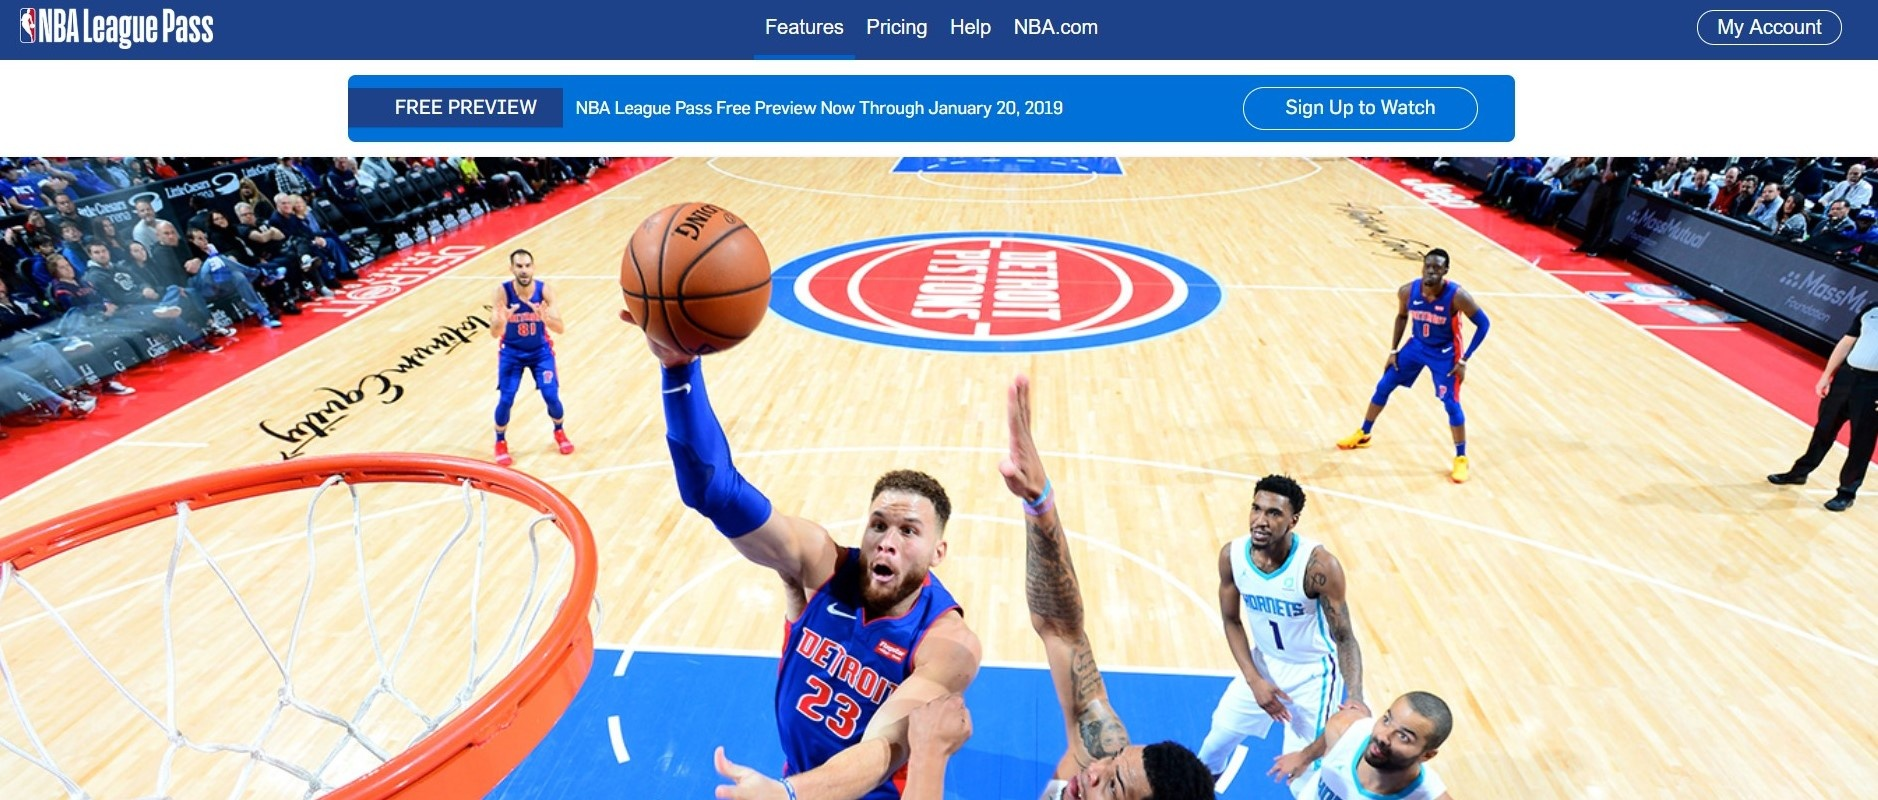 Thumbnail for NBA League Pass